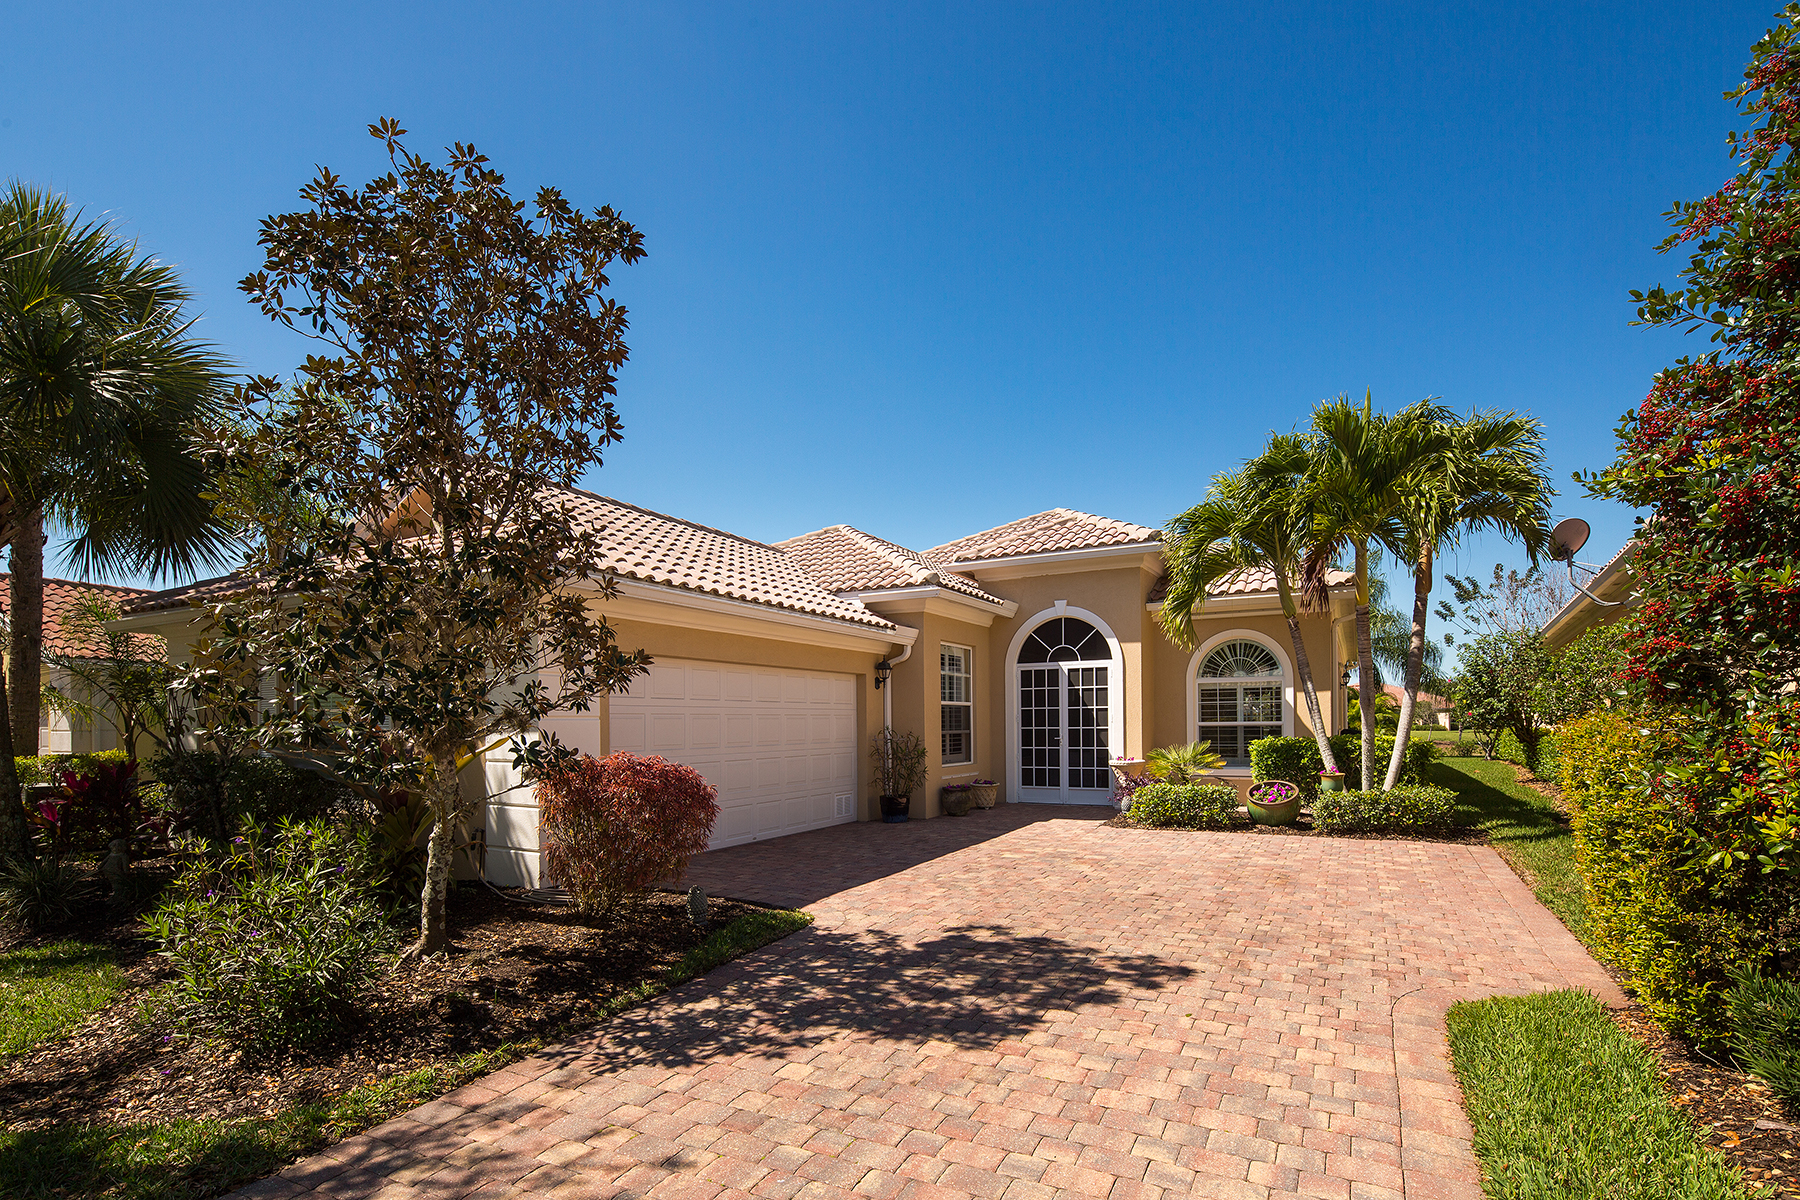 Single Family Home for Sale at 28628 Wahoo Dr , Bonita Springs, FL 34135 28628 Wahoo Dr, Bonita Springs, Florida 34135 United States